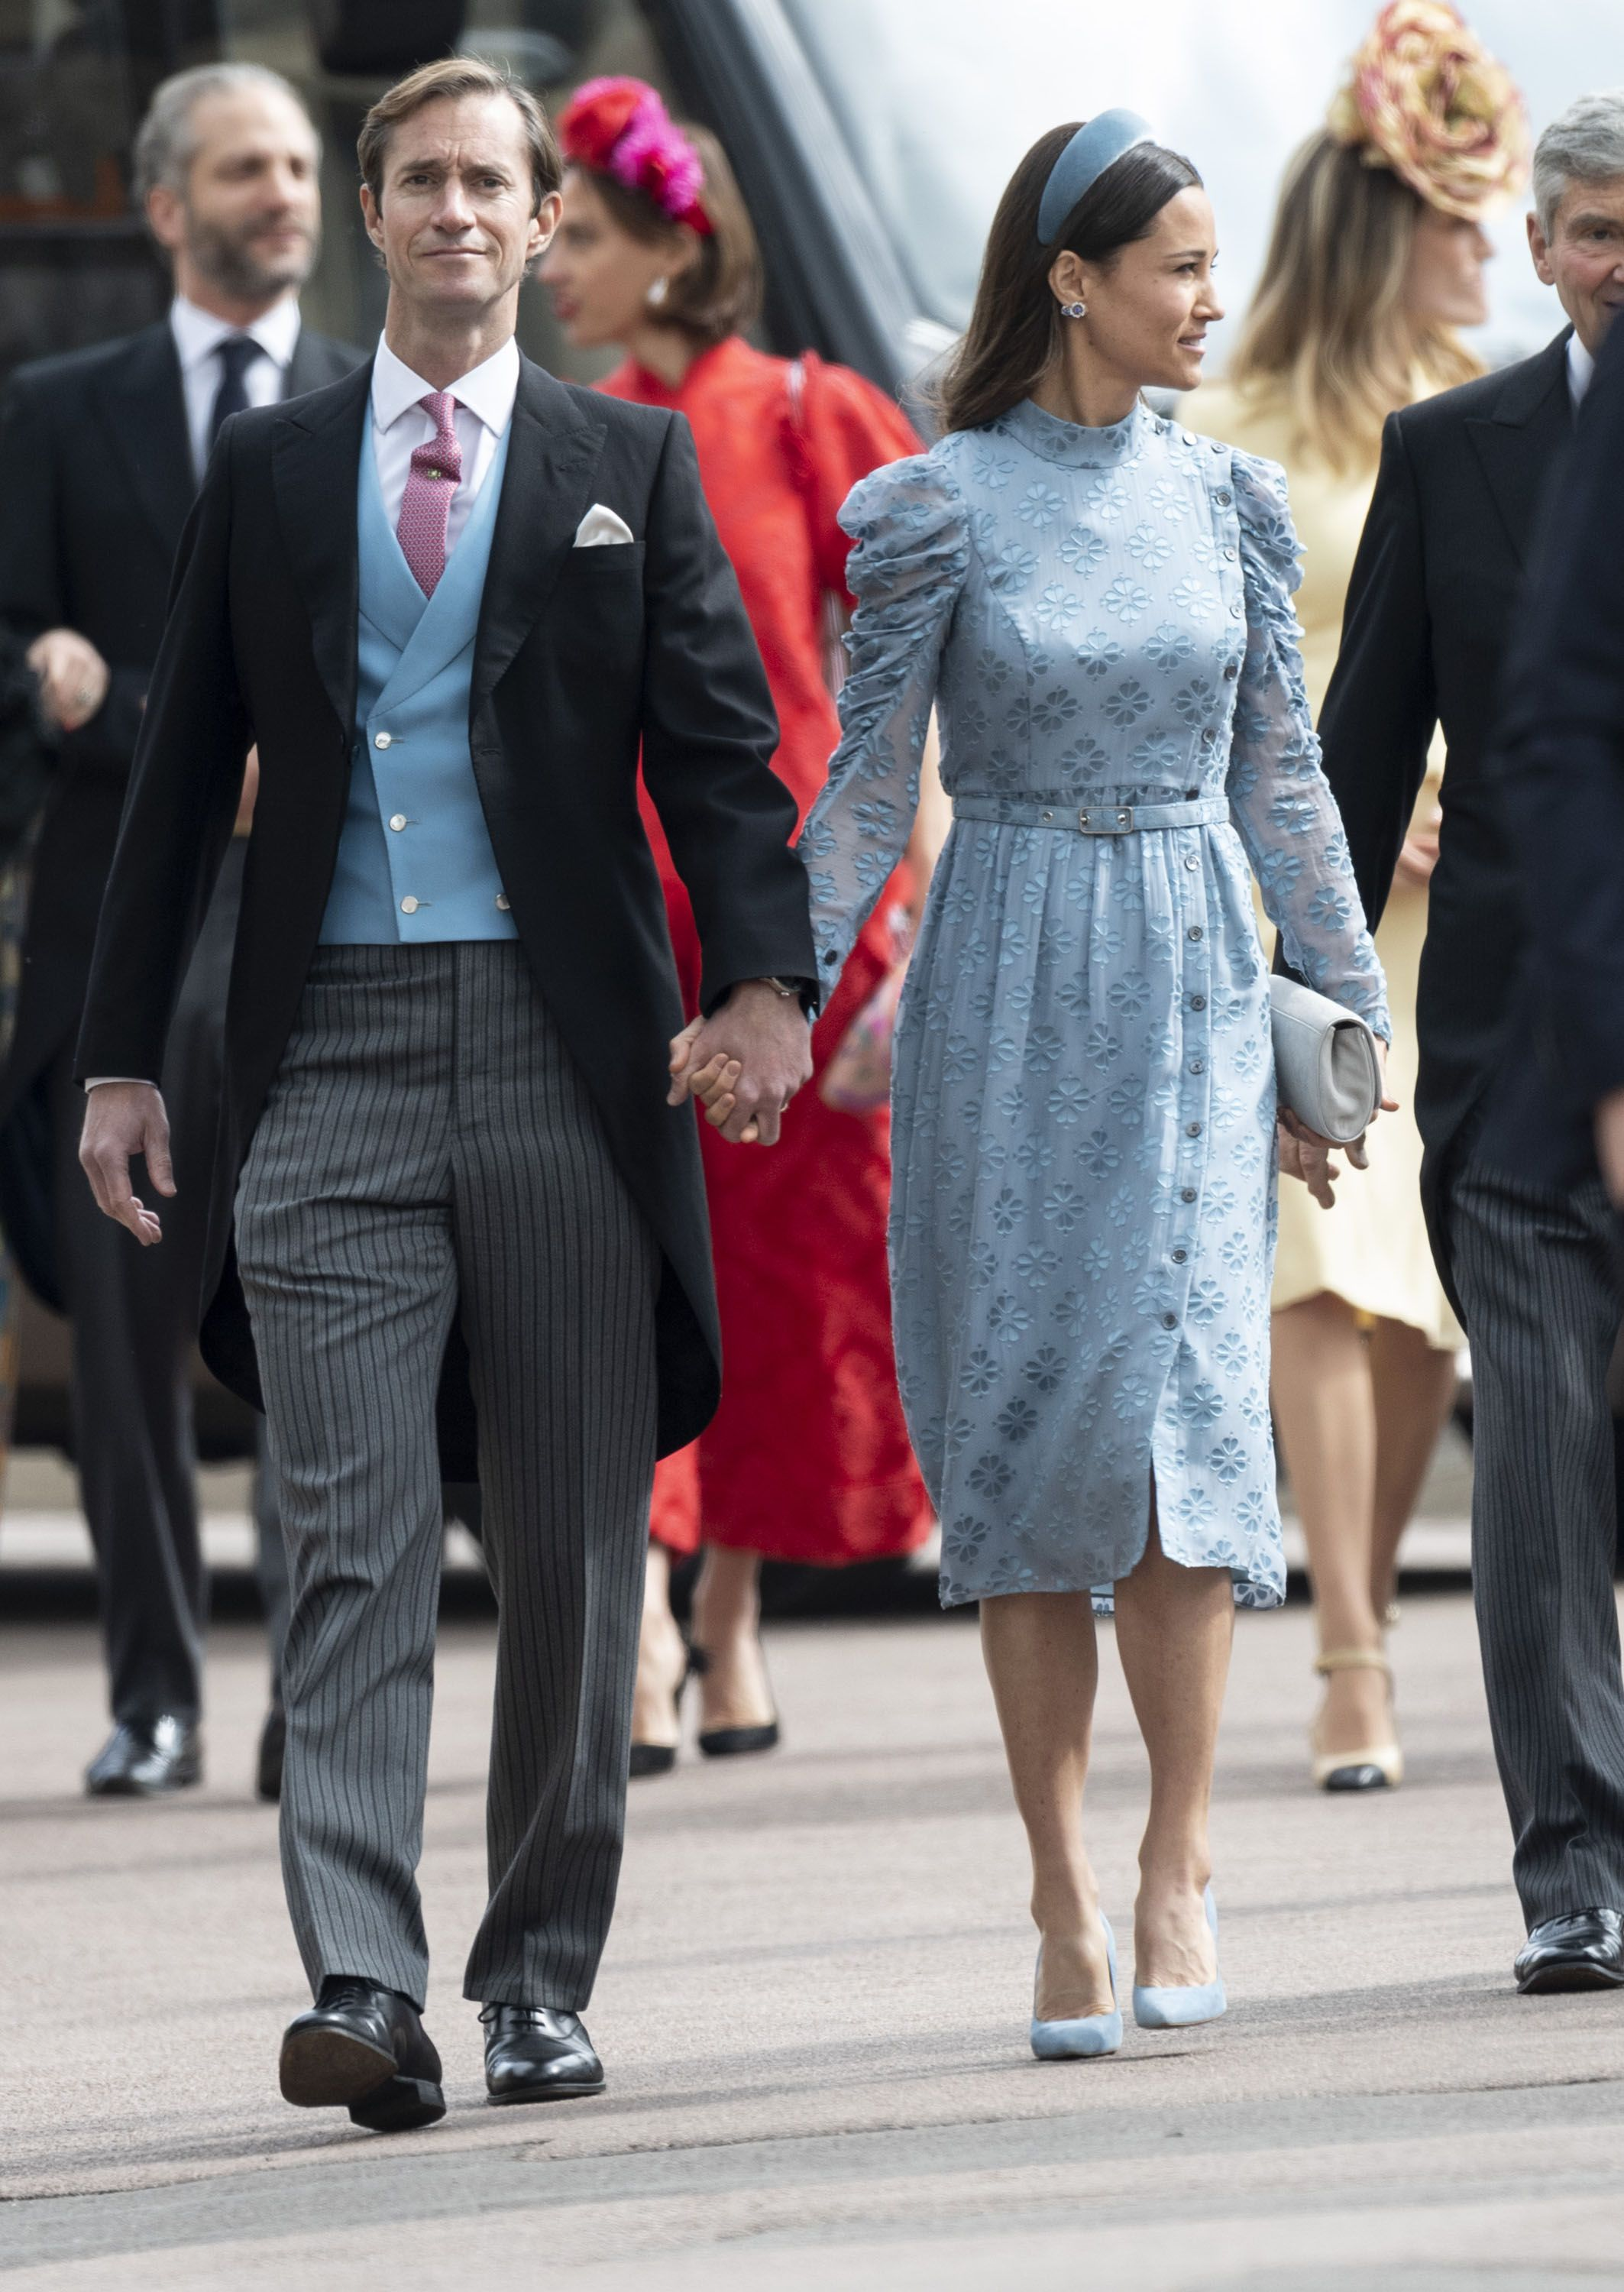 Wearing Kate Spade and a hatband—a trend started by her sister.